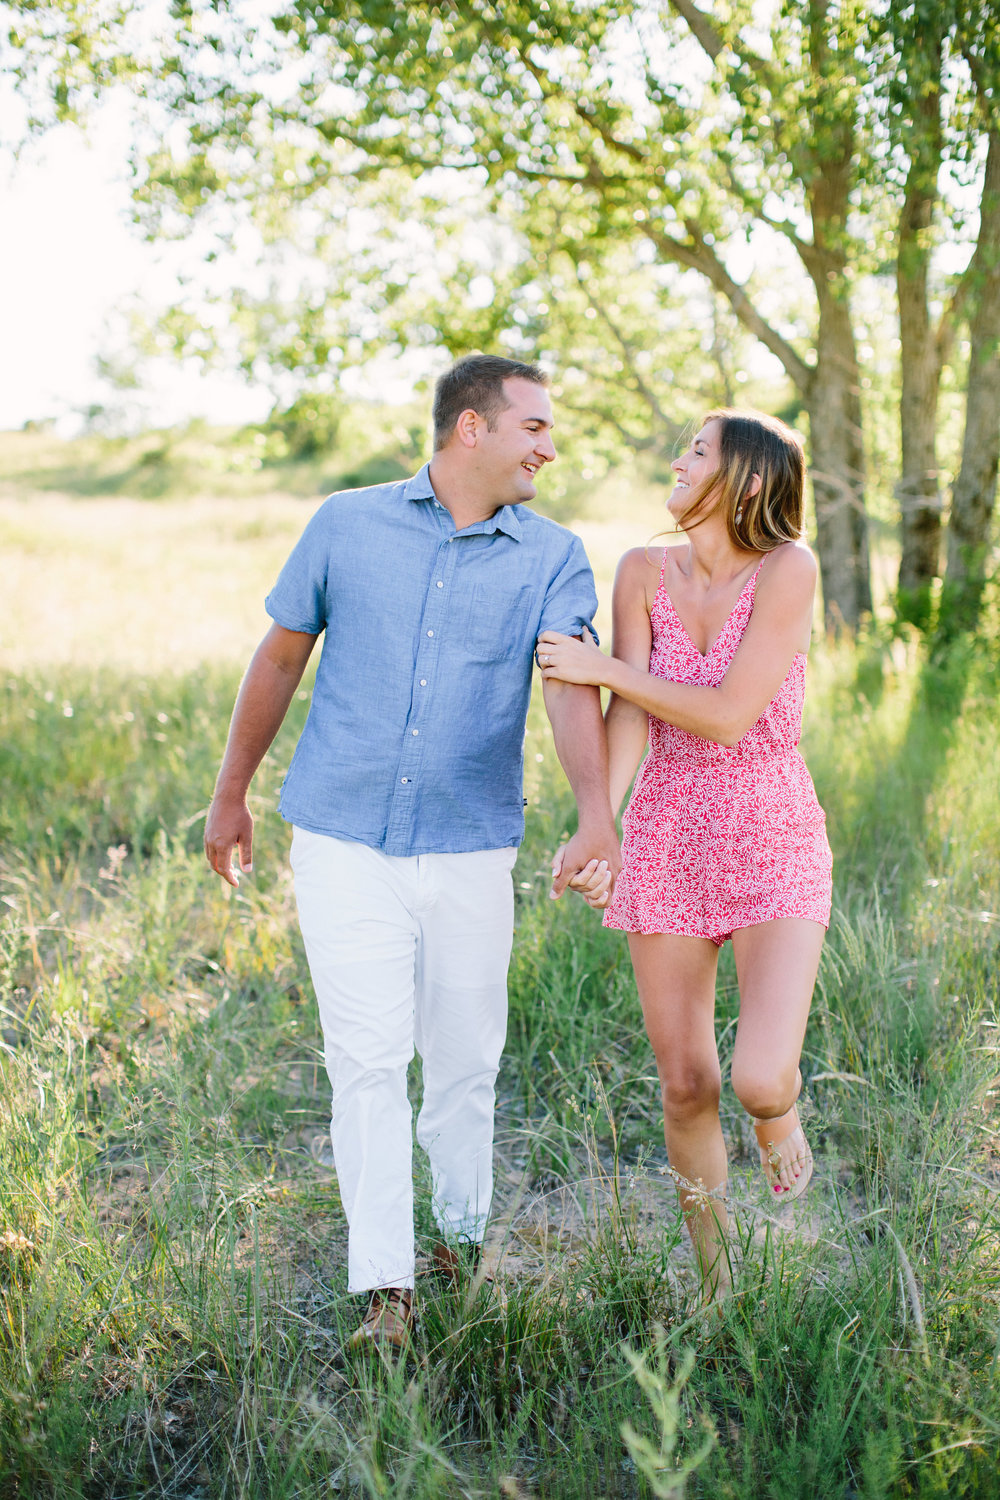 Sleeping Bear Dunes | Traverse City, Michigan Engagement Session | Benjamin Hewitt Photography